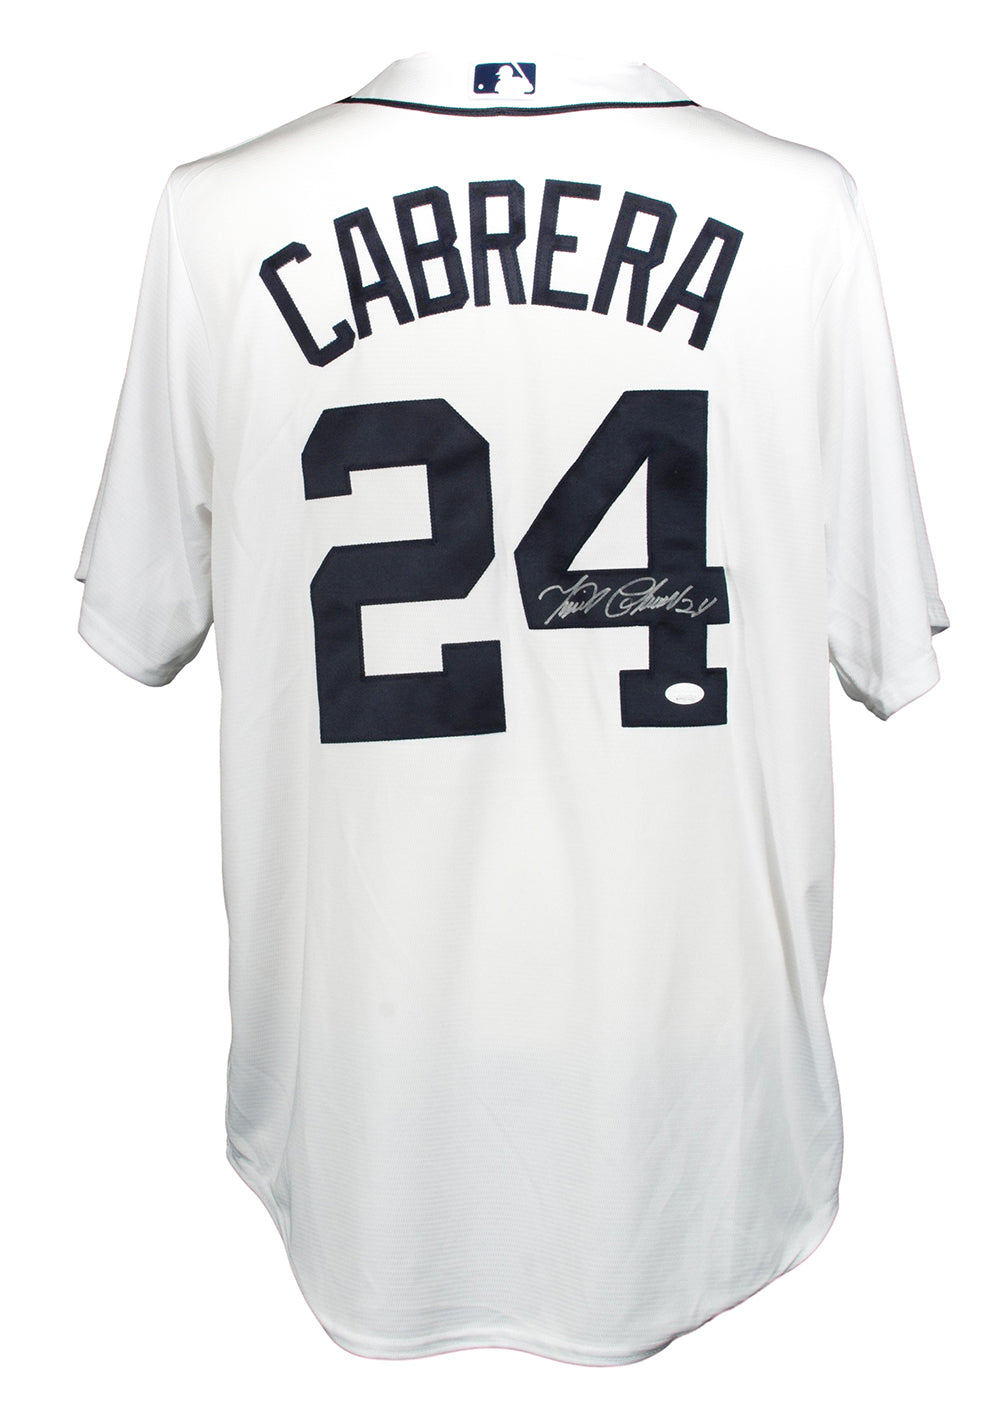 Miguel Cabrera Signed Tigers Majestic Cool Base White Baseball Jersey JSA